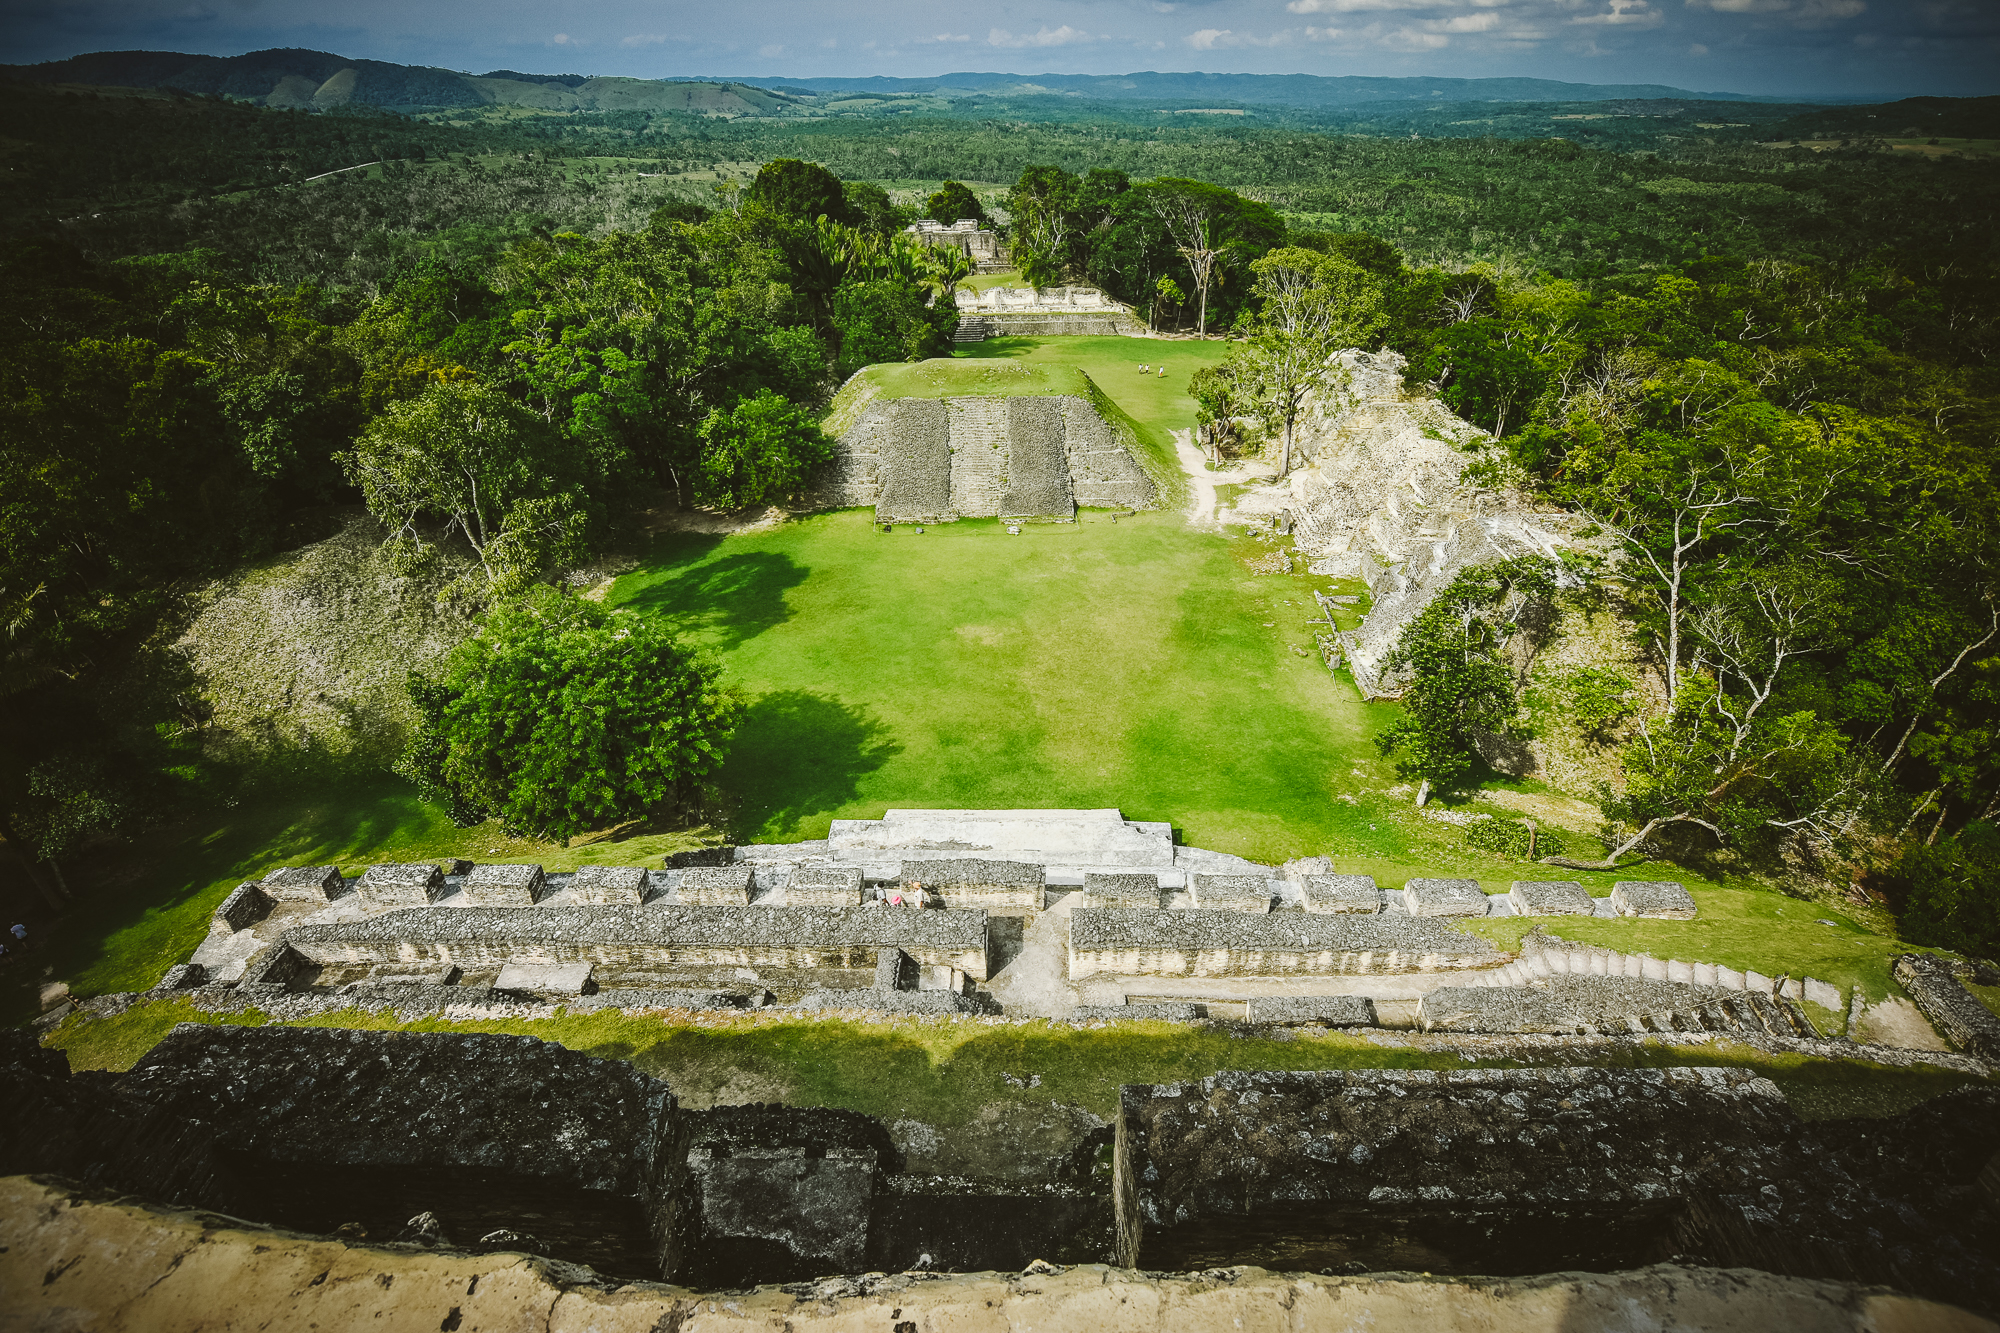 The fantastic view from atop the main temple at  Xunantunich , one of the tallest and most interesting ancient Mayan structures still in existence. To the west (left) is Guatemala. Getting up here was the easy part...